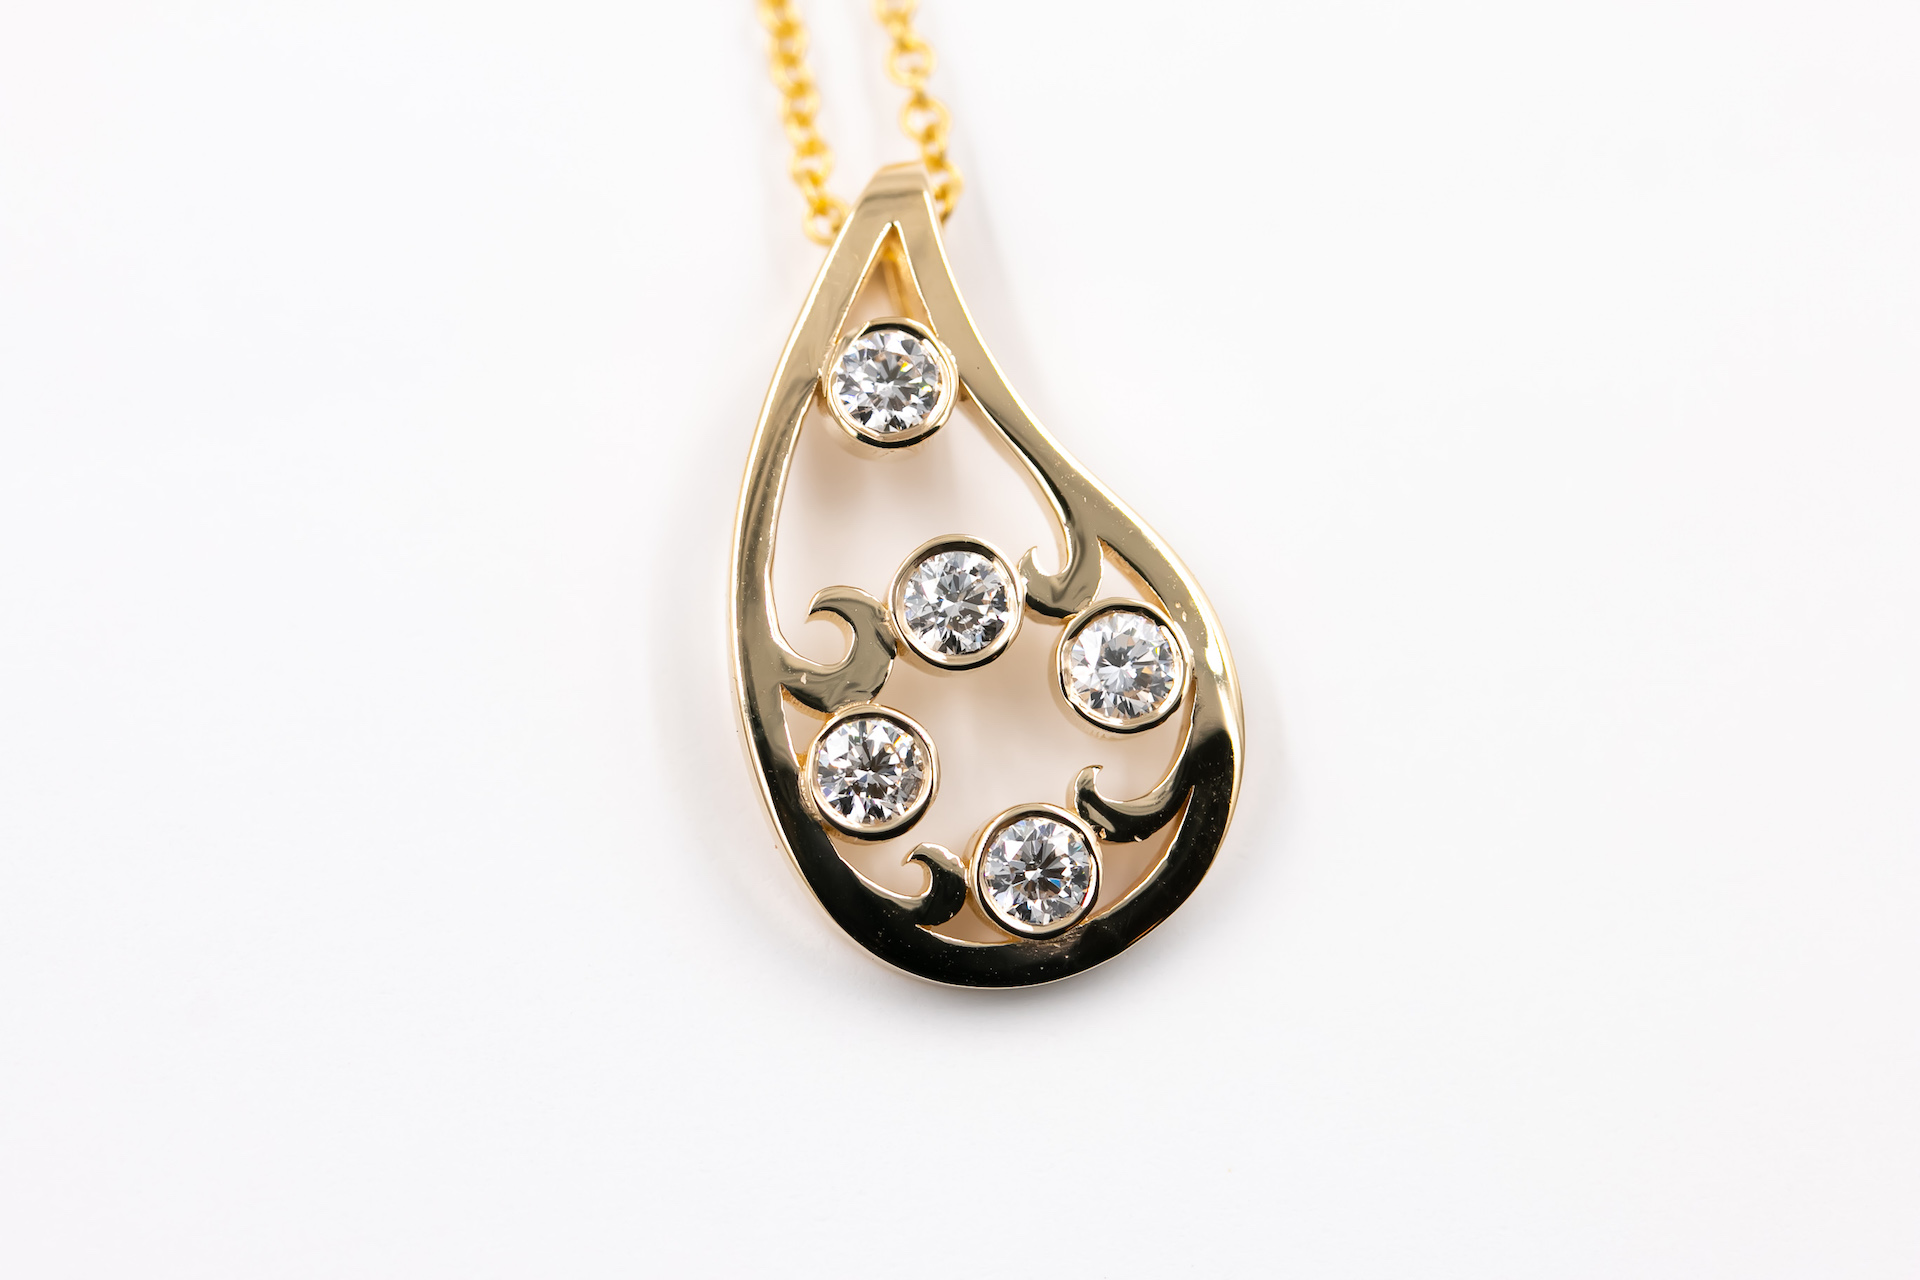 gold-diamond-pendant-necklace-jewelry-